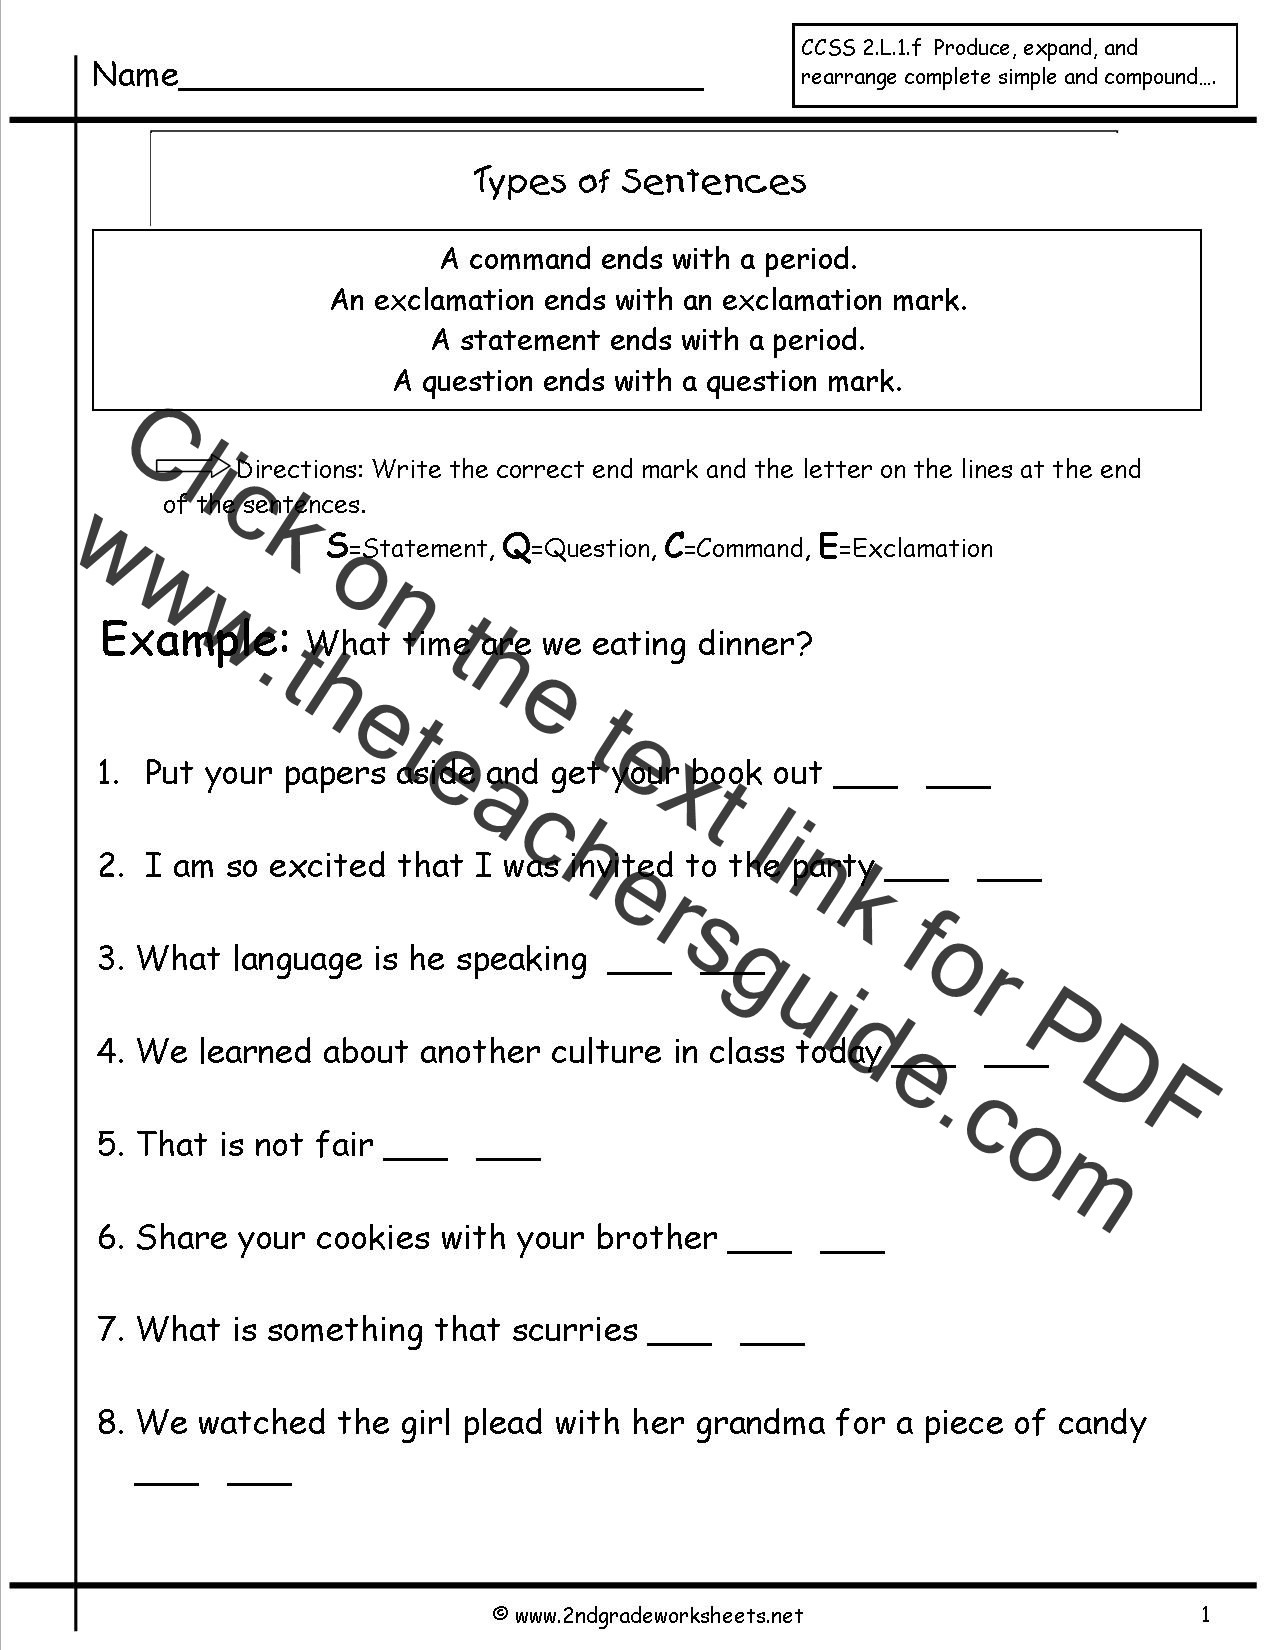 Writing Sentences Worksheets 3rd Grade Second Grade Sentences Worksheets Ccss 2 L 1 F Worksheets